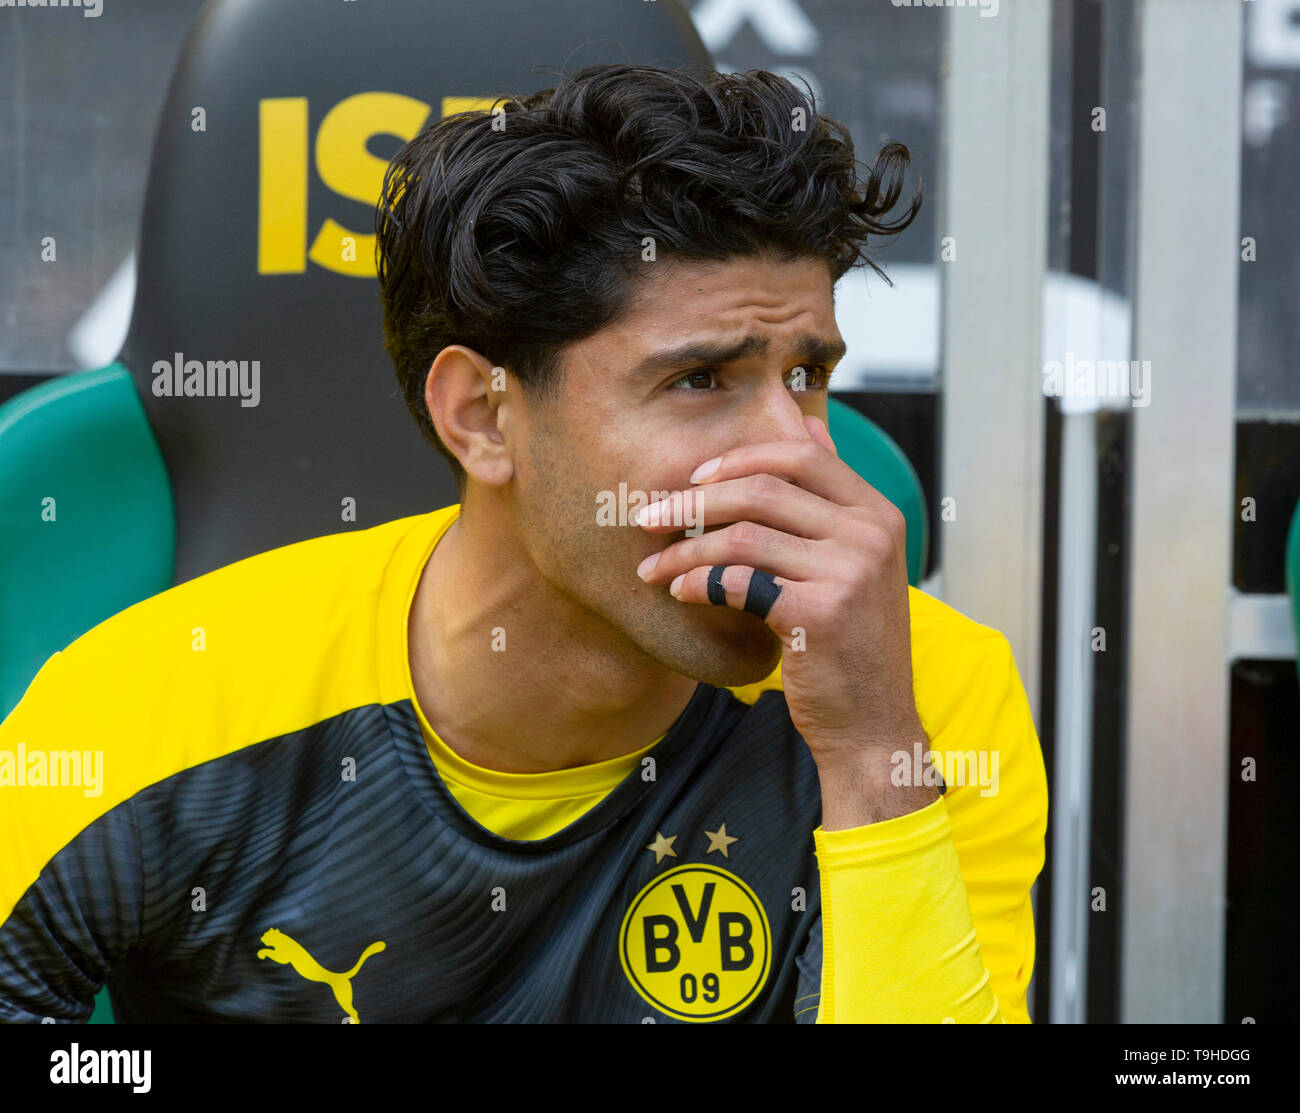 sports, football, Bundesliga, 2018/2019, Borussia Moenchengladbach vs. BVB Borussia Dortmund 0-2, Stadium Borussia Park, players bench, Mahmoud Dahoud (BVB), DFL REGULATIONS PROHIBIT ANY USE OF PHOTOGRAPHS AS IMAGE SEQUENCES AND/OR QUASI-VIDEO - Stock Image